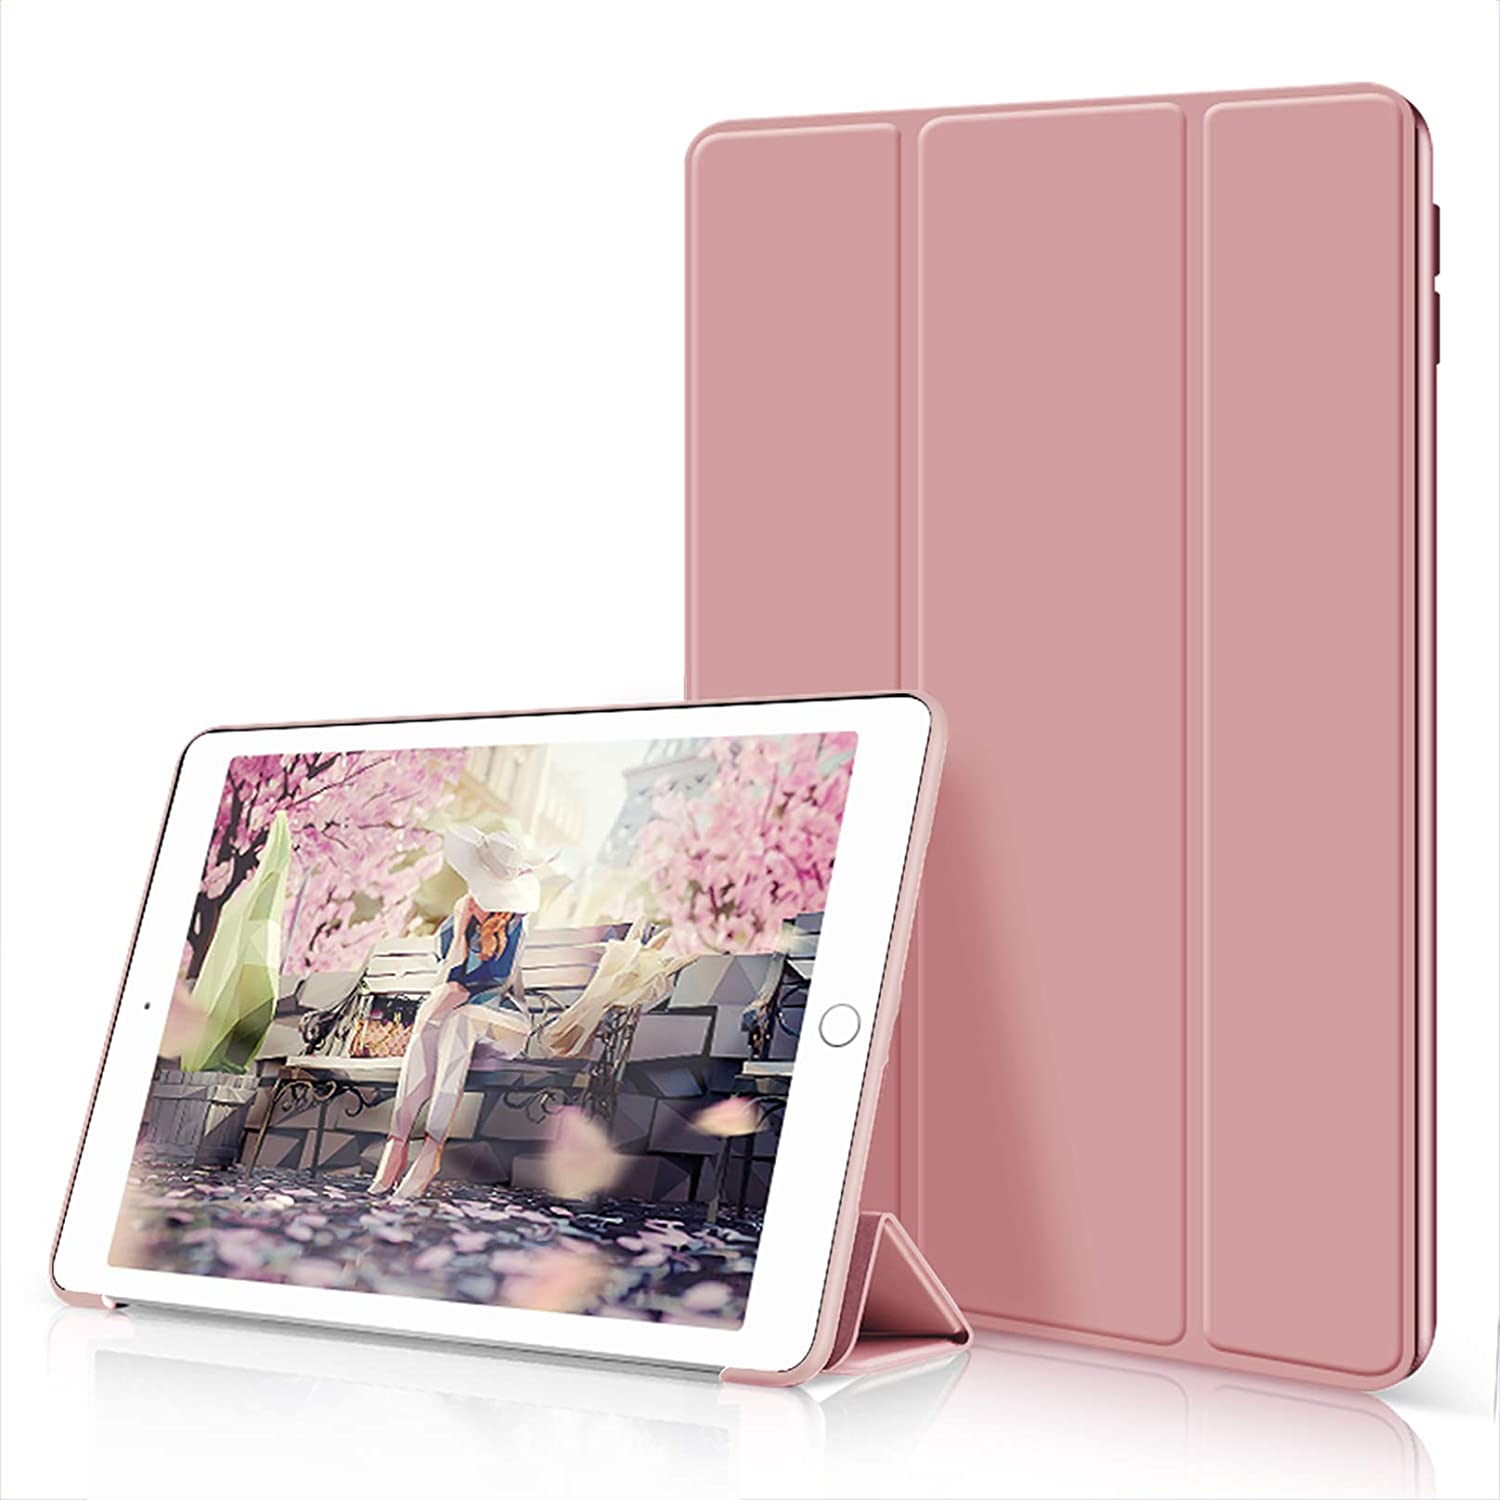 Aoub Case for iPad Mini 1/2/3, Ultra Slim Lightweight Trifold Stand Smart Auto Sleep/Wake Cover, Soft TPU Silicone Back Case for iPad Mini 1st/2nd/3rd Generation 7.9 inch, Rose Gold